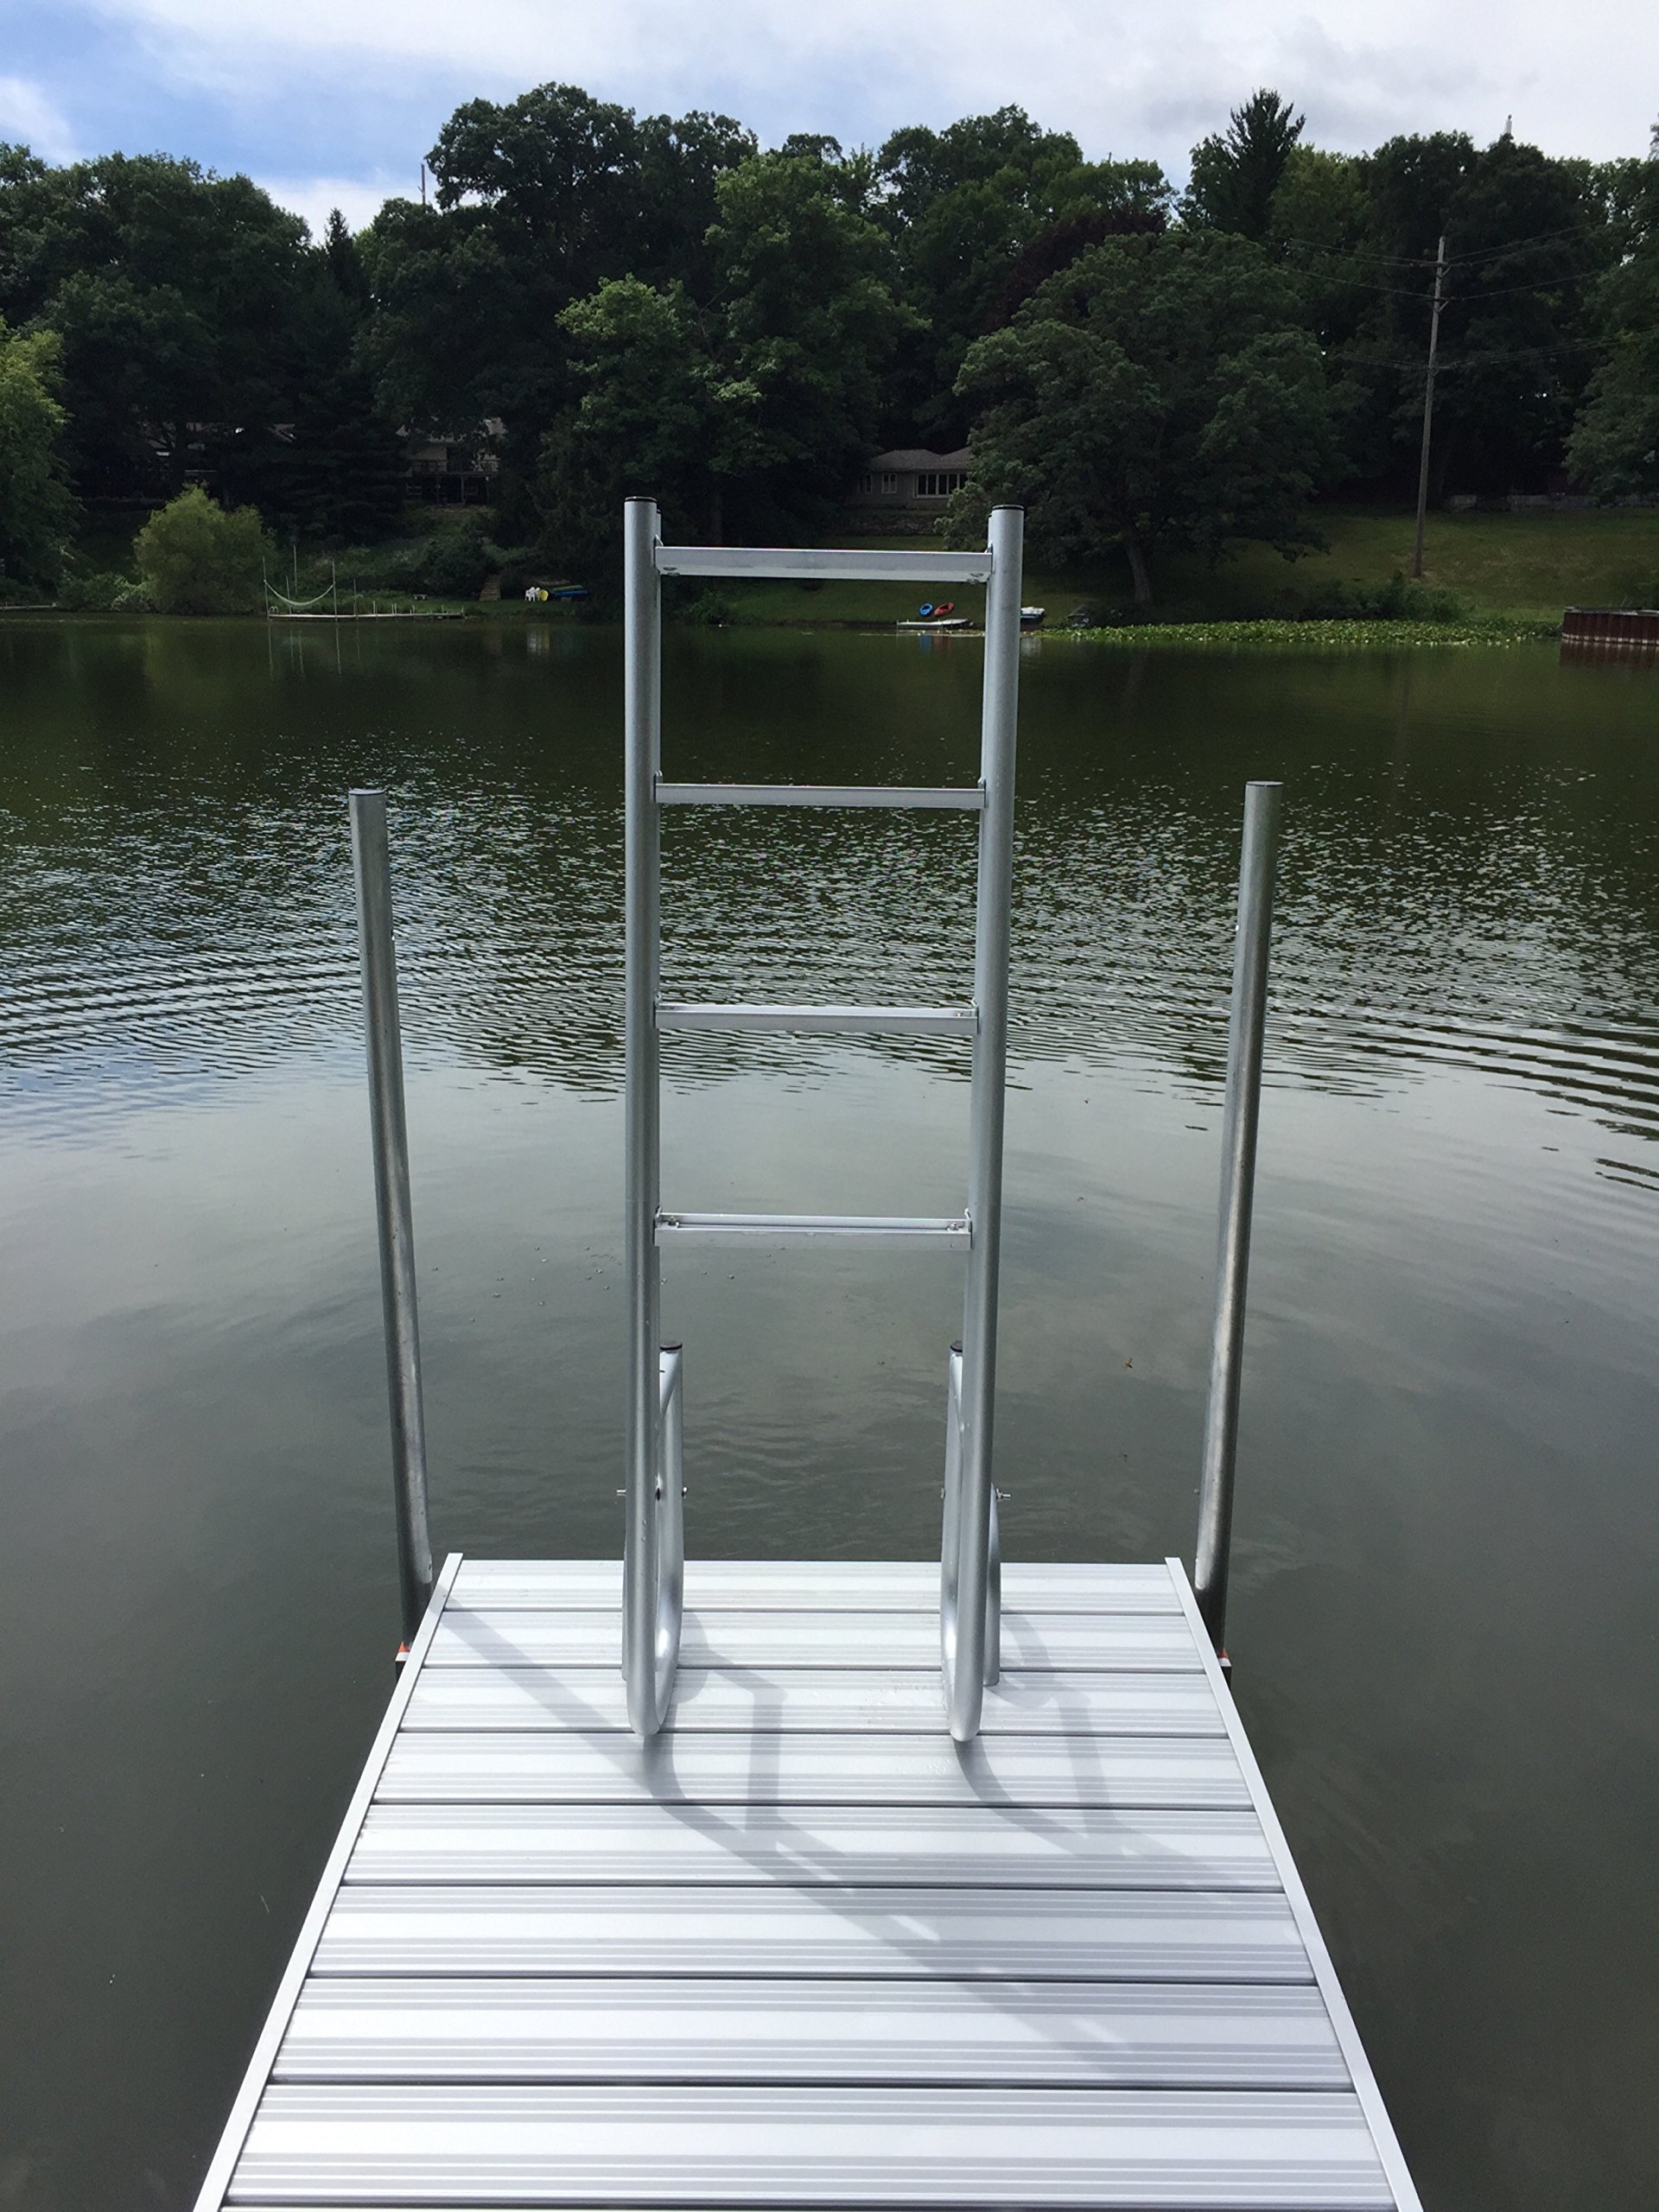 4 Step Heavy Duty Anodized Aluminum Swimming Pool Dock Ladder FLIP UP by Ortus Enterprises